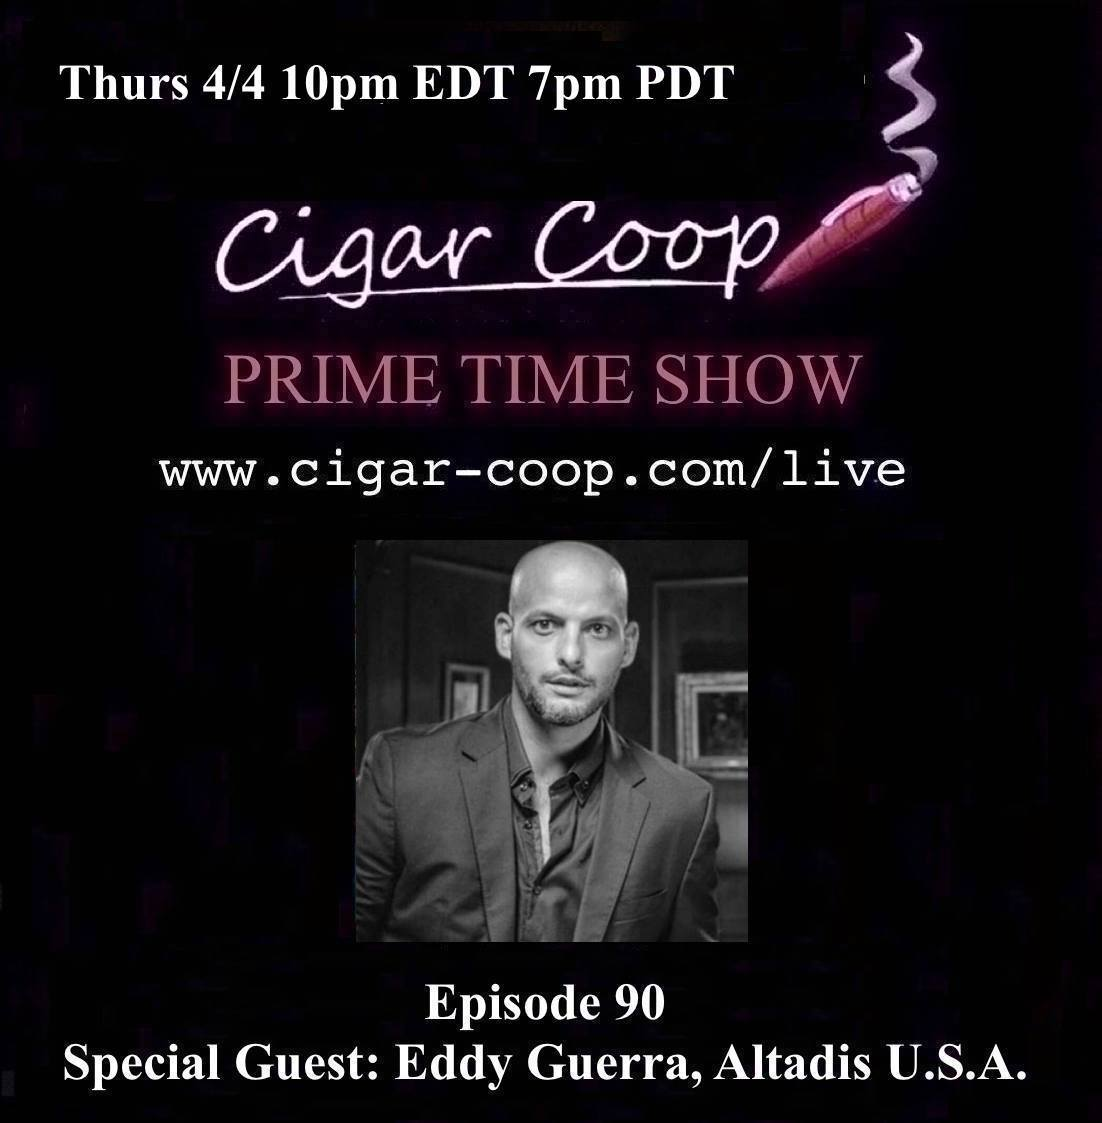 Announcement: Prime Time Episode 90 – Eddy Guerra, Altadis U.S.A.